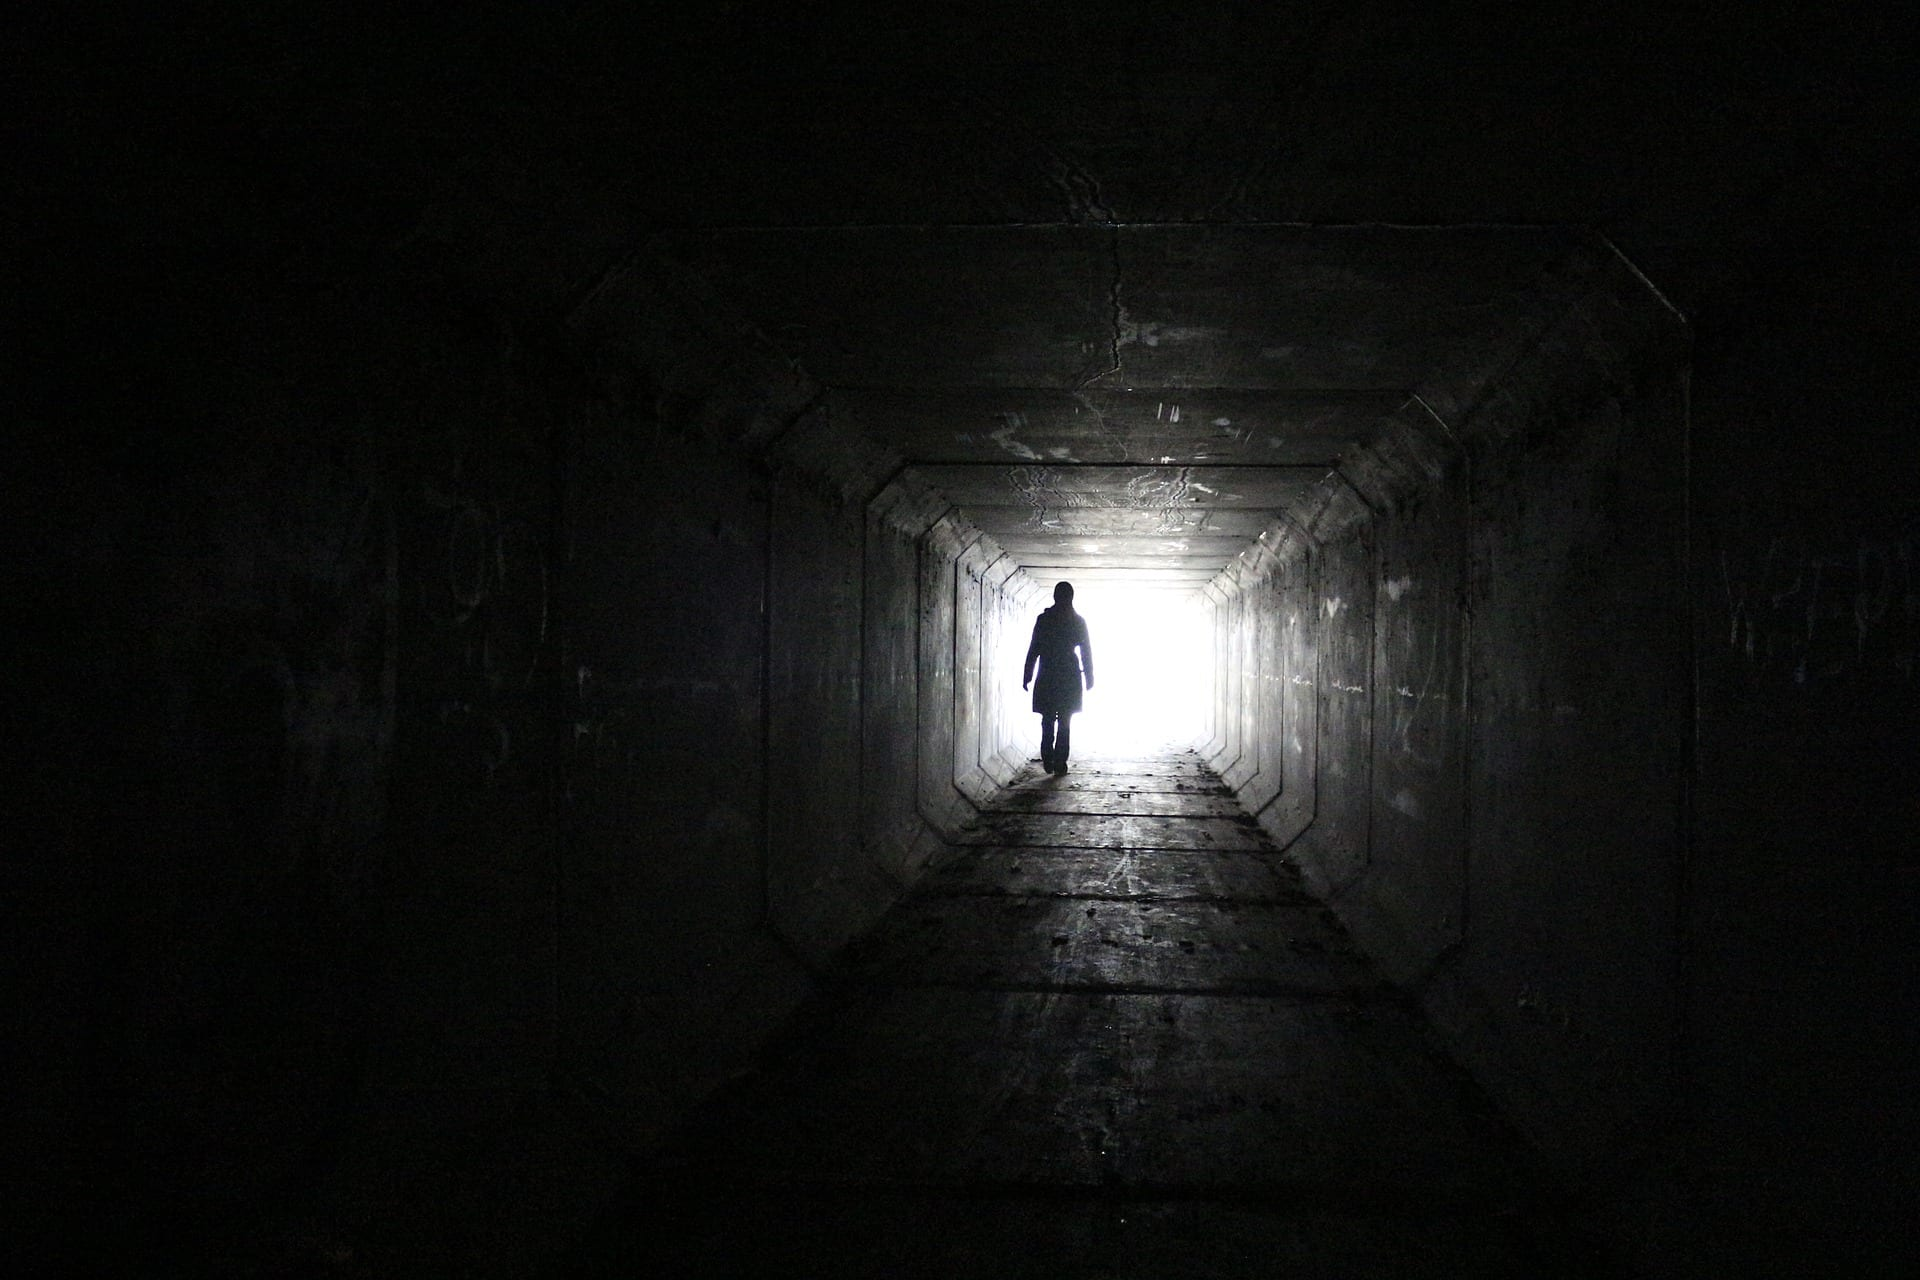 man looks down tunnel, mysterious